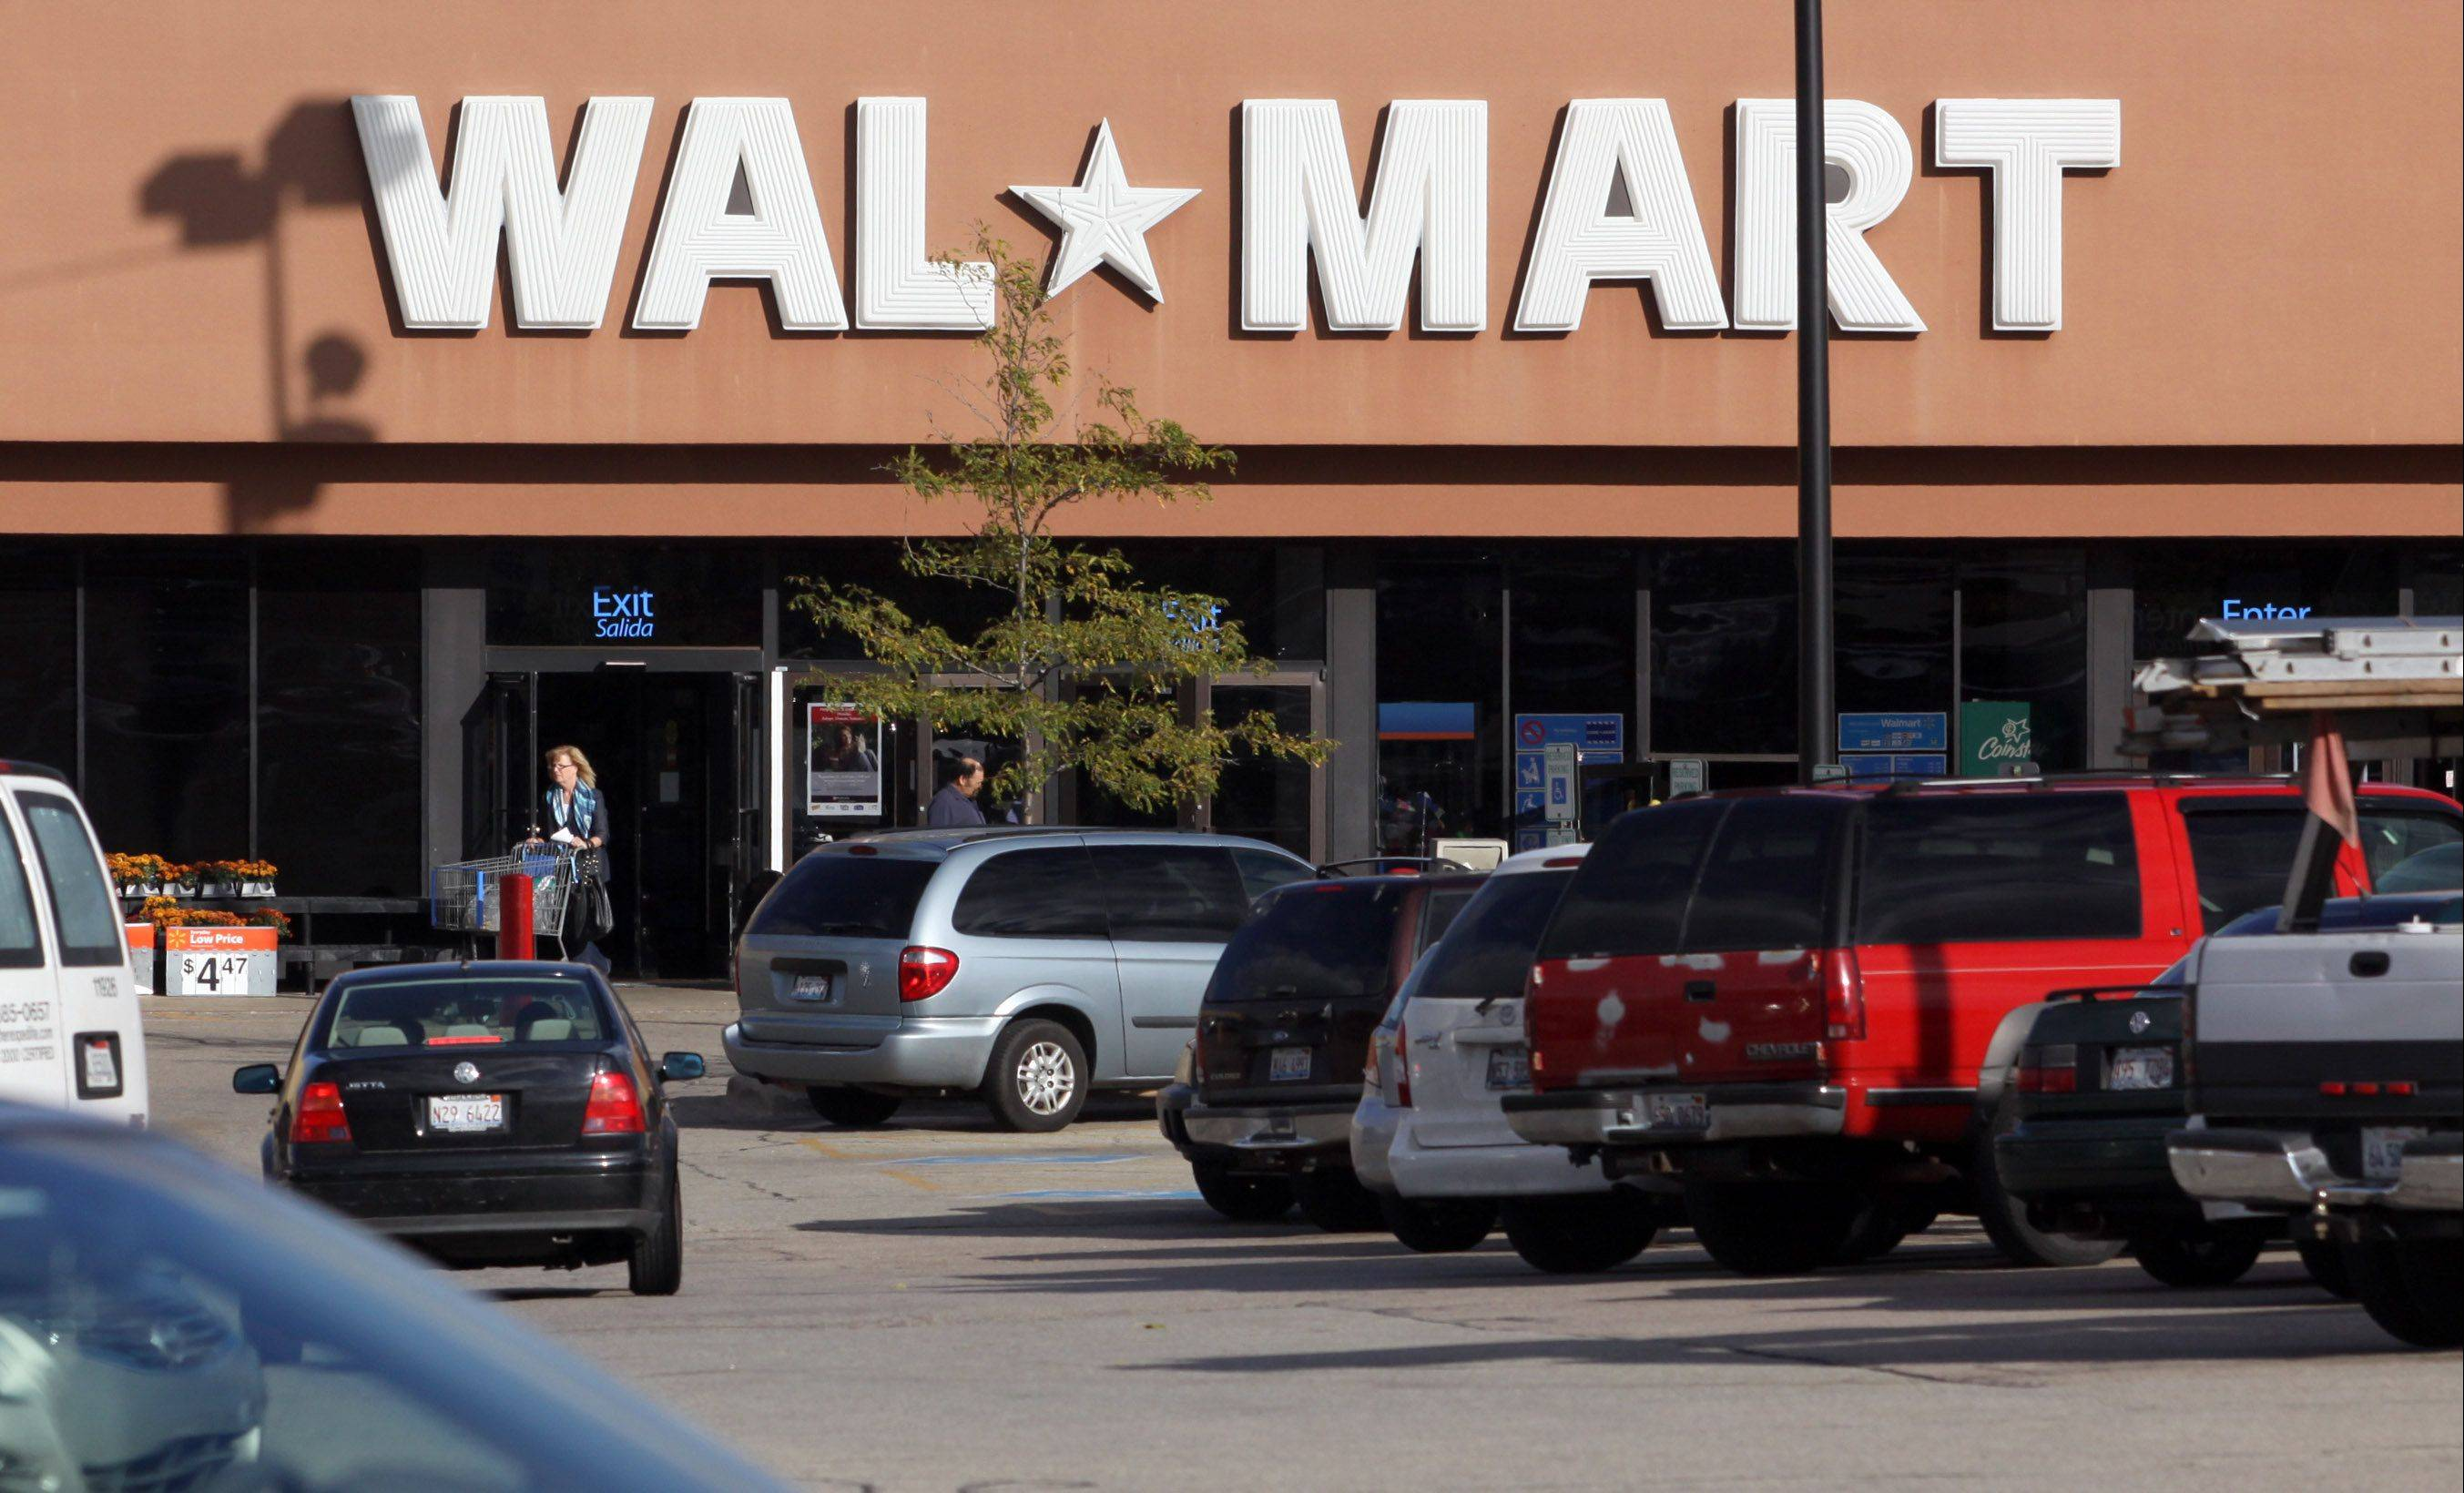 Wal-Mart plans to close this store in East Dundee and build a Walmart Super Center, complete with a grocery store, two miles away in Carpentersville. The new store is scheduled to open in 2015.